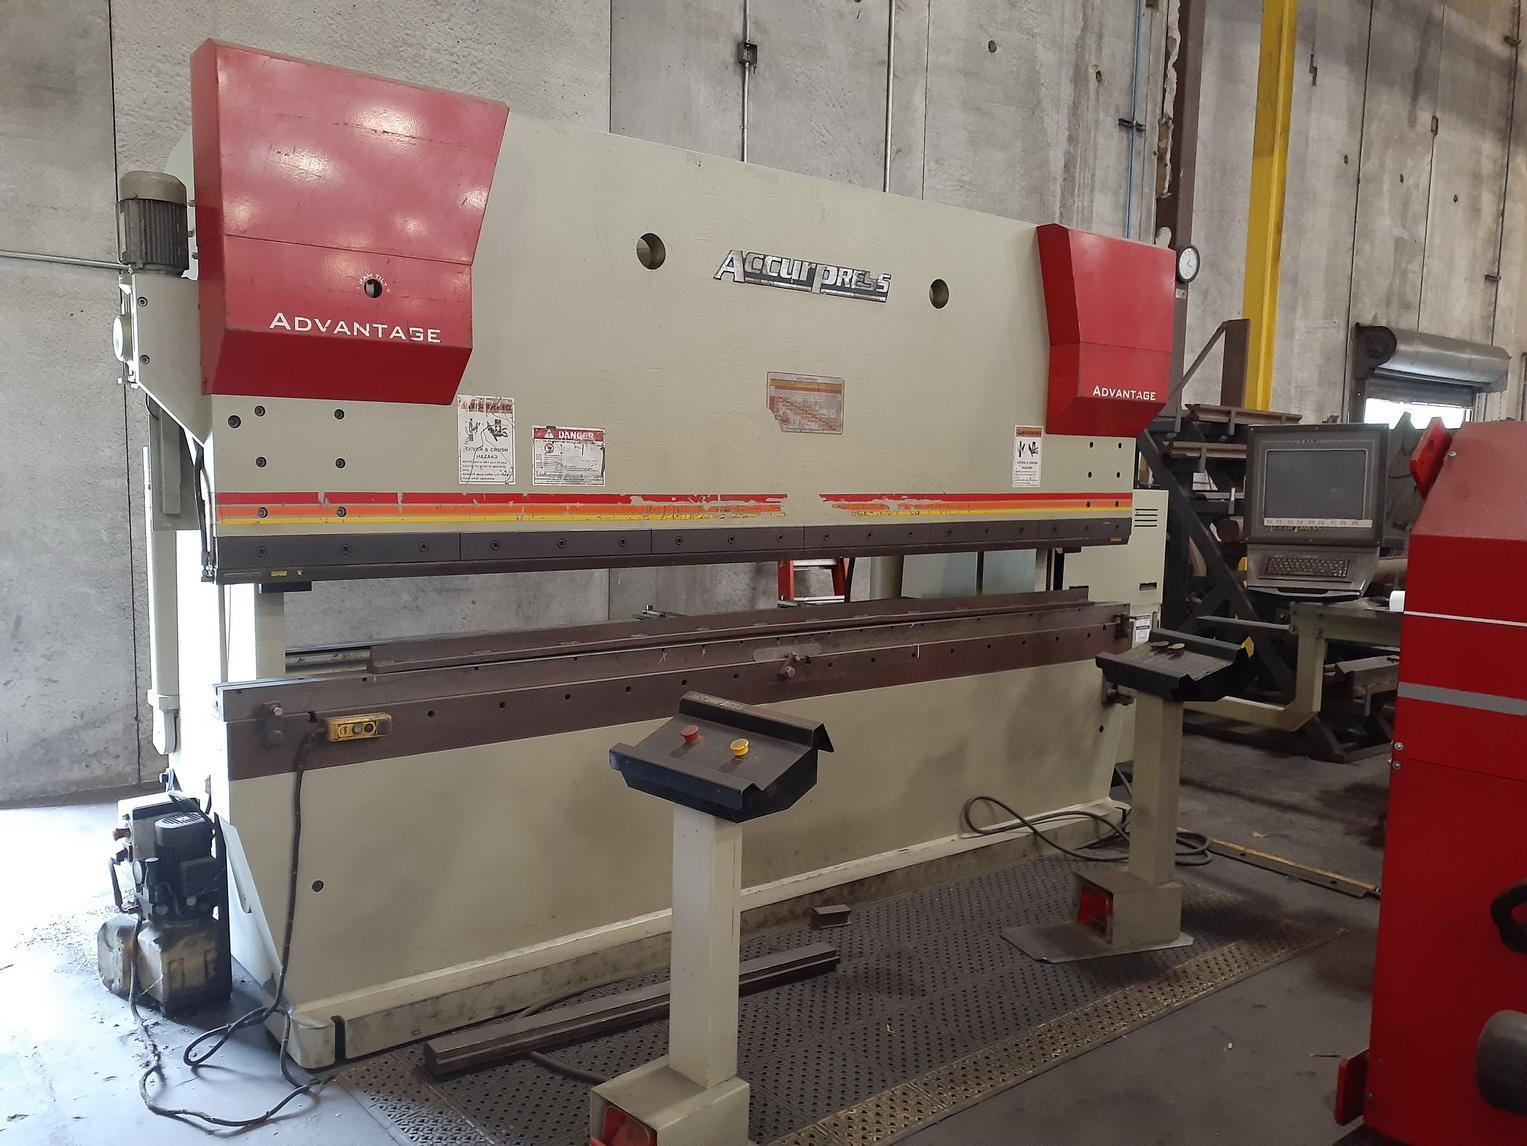 """250 Ton x 144"""" ACCURPRESS 725012 Hydraulic Brake Press, 4 axis Accurpress ETS 3000 CNC Control  Advantage Package Option; ADVANTAGE PACKAGE"""